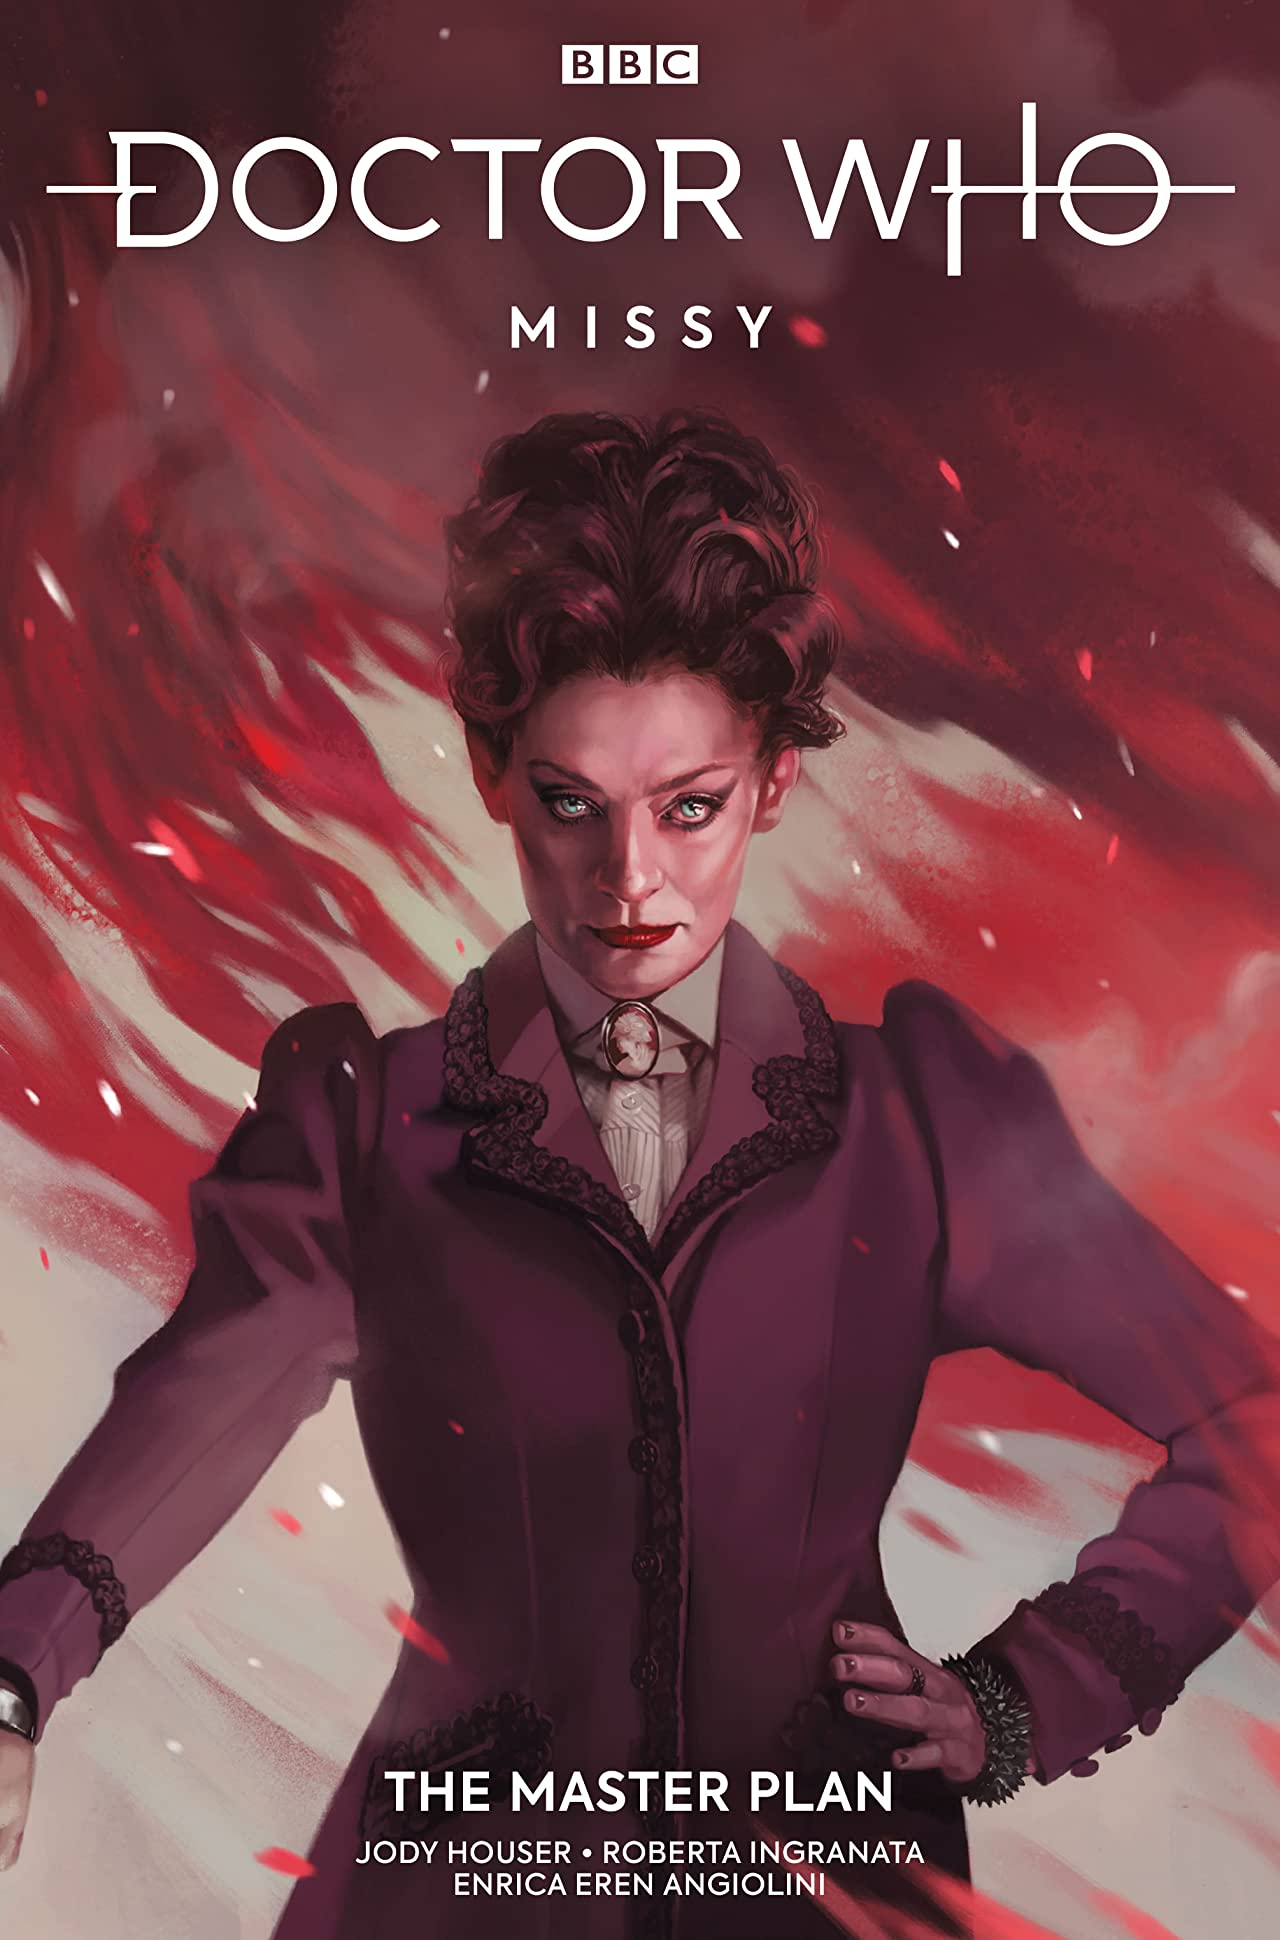 Doctor Who Comic Vol. 2: Missy